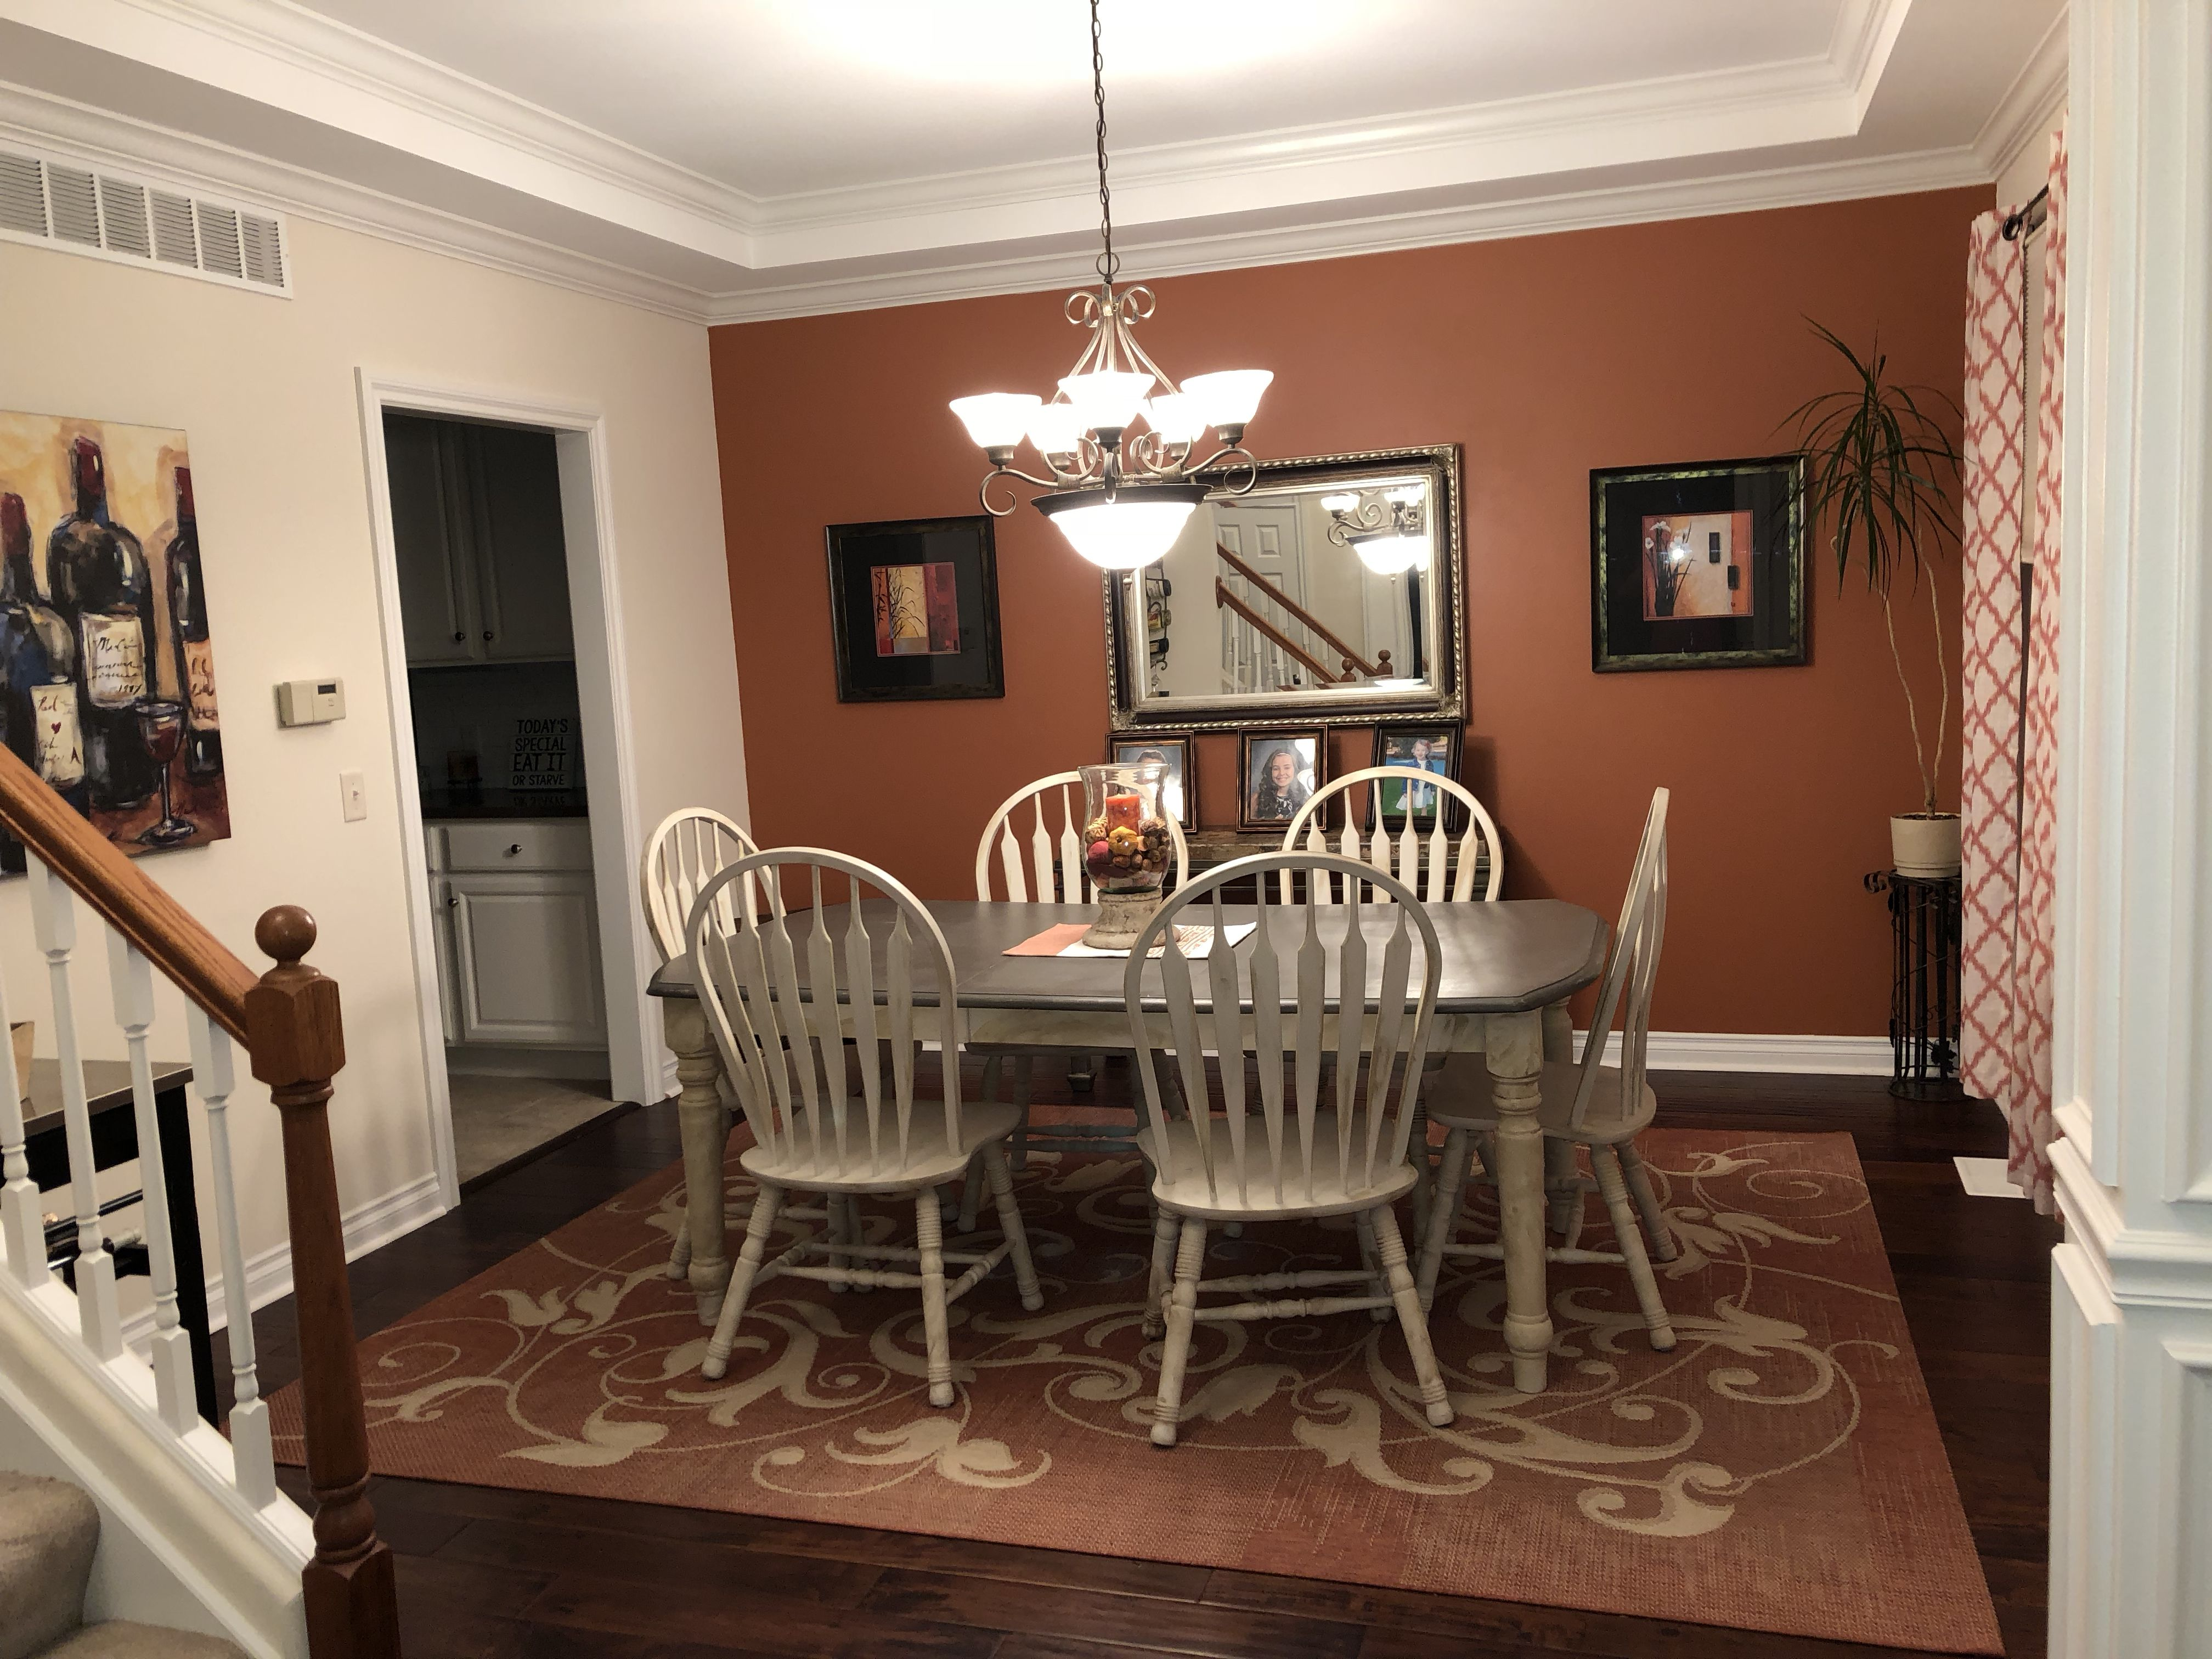 Cavern Clay Accent Wall Sherwin Williams Living Room Paint Color Palette Living Room Room Paint Colors